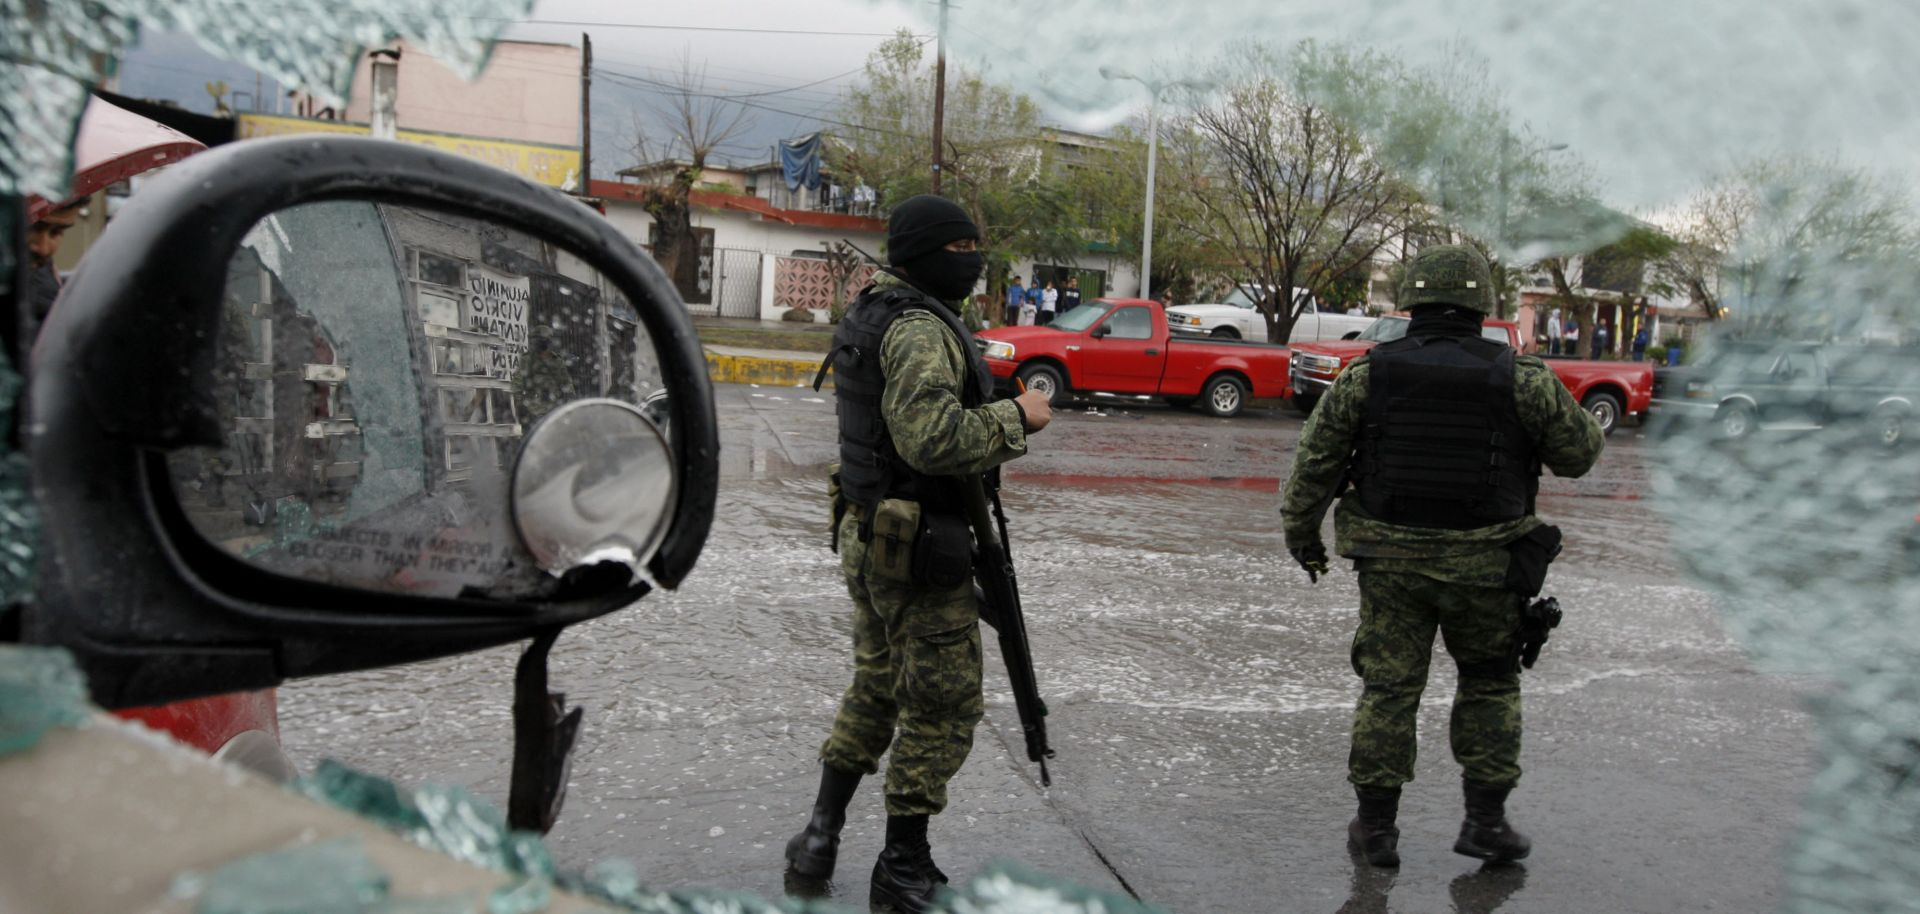 Soldiers in February 2012 in Monterrey, Mexico, at the scene of drug violence.